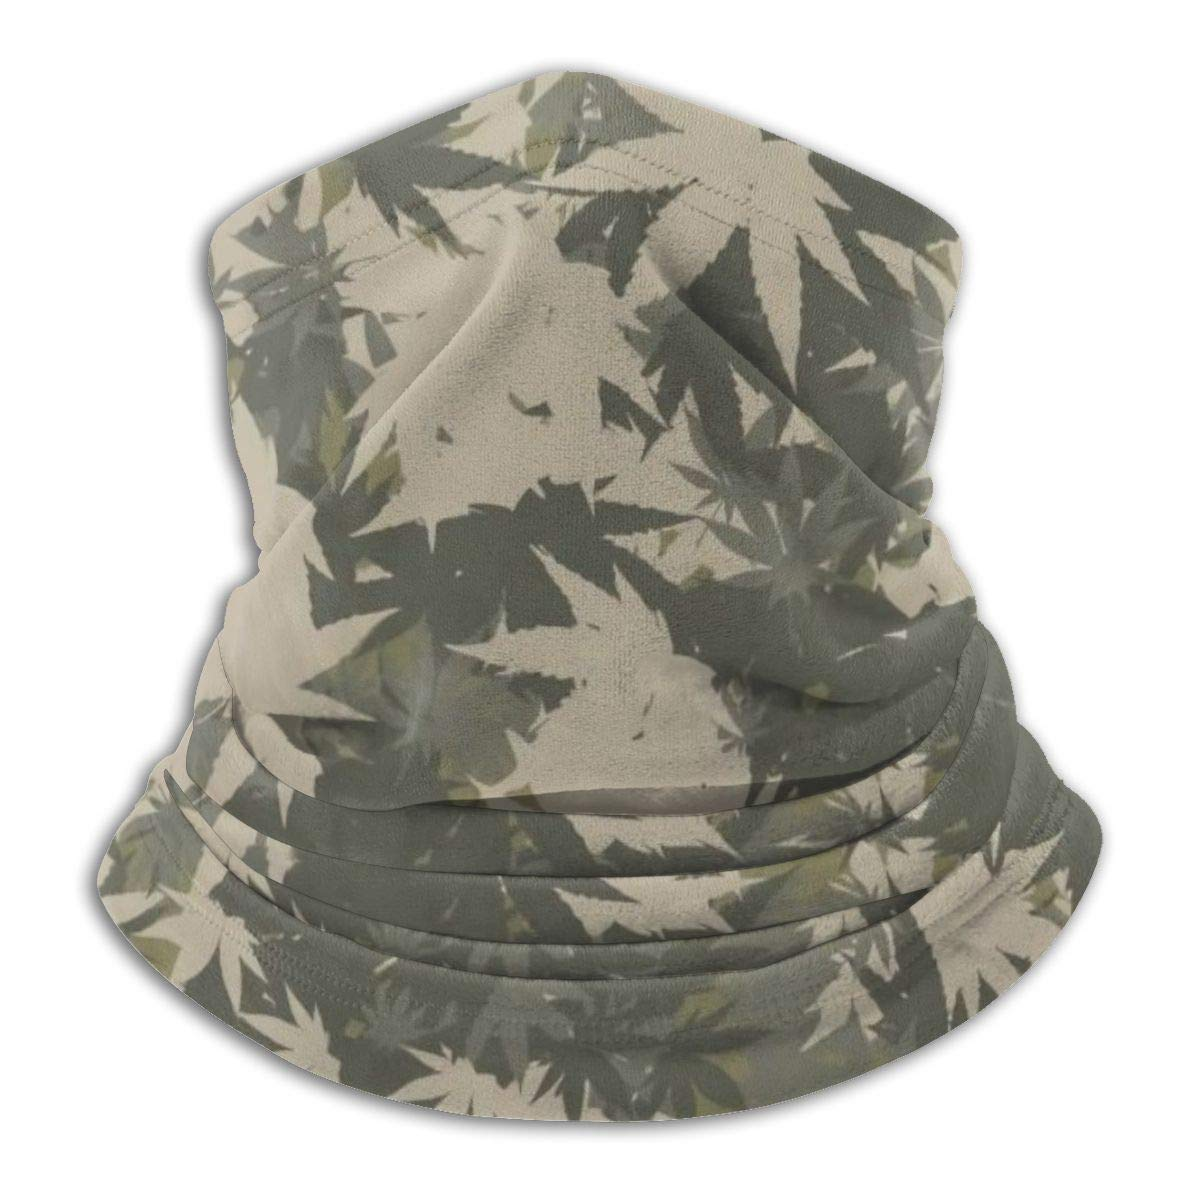 Cannabis Camouflage Pattern Outdoor Headwear Fleece Neck Warmer Comfortable Neck Gaiter Warmer Face Mask Winter Scarf For Cold Weather Winter Outdoor Sports